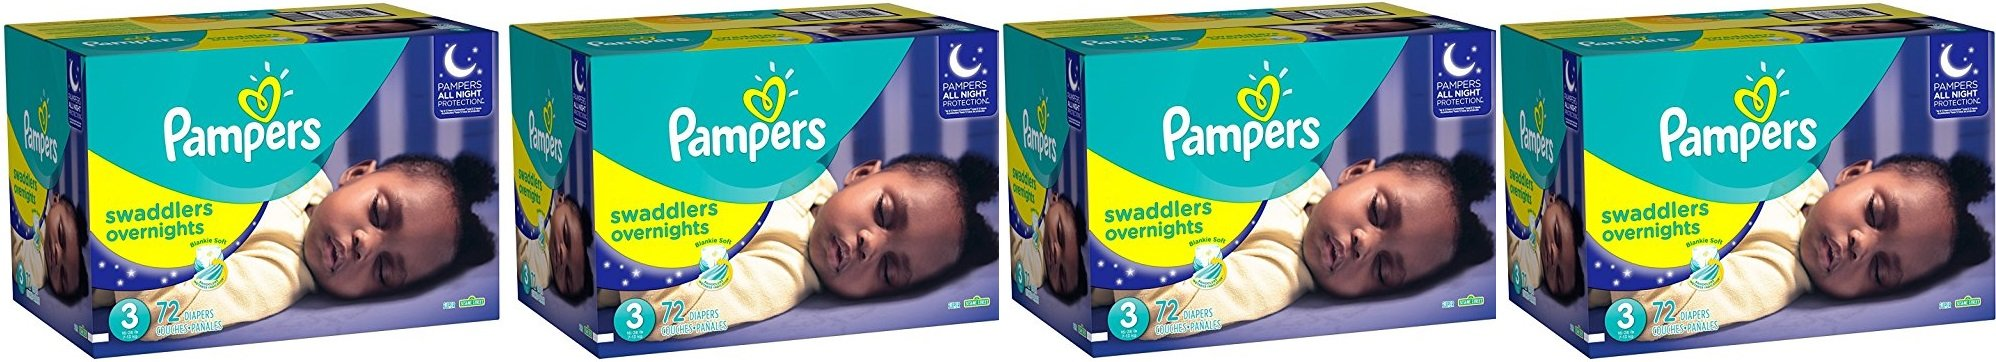 Pampers Swaddlers Overnights Diapers XVLSYD, Size 3, 288 Count